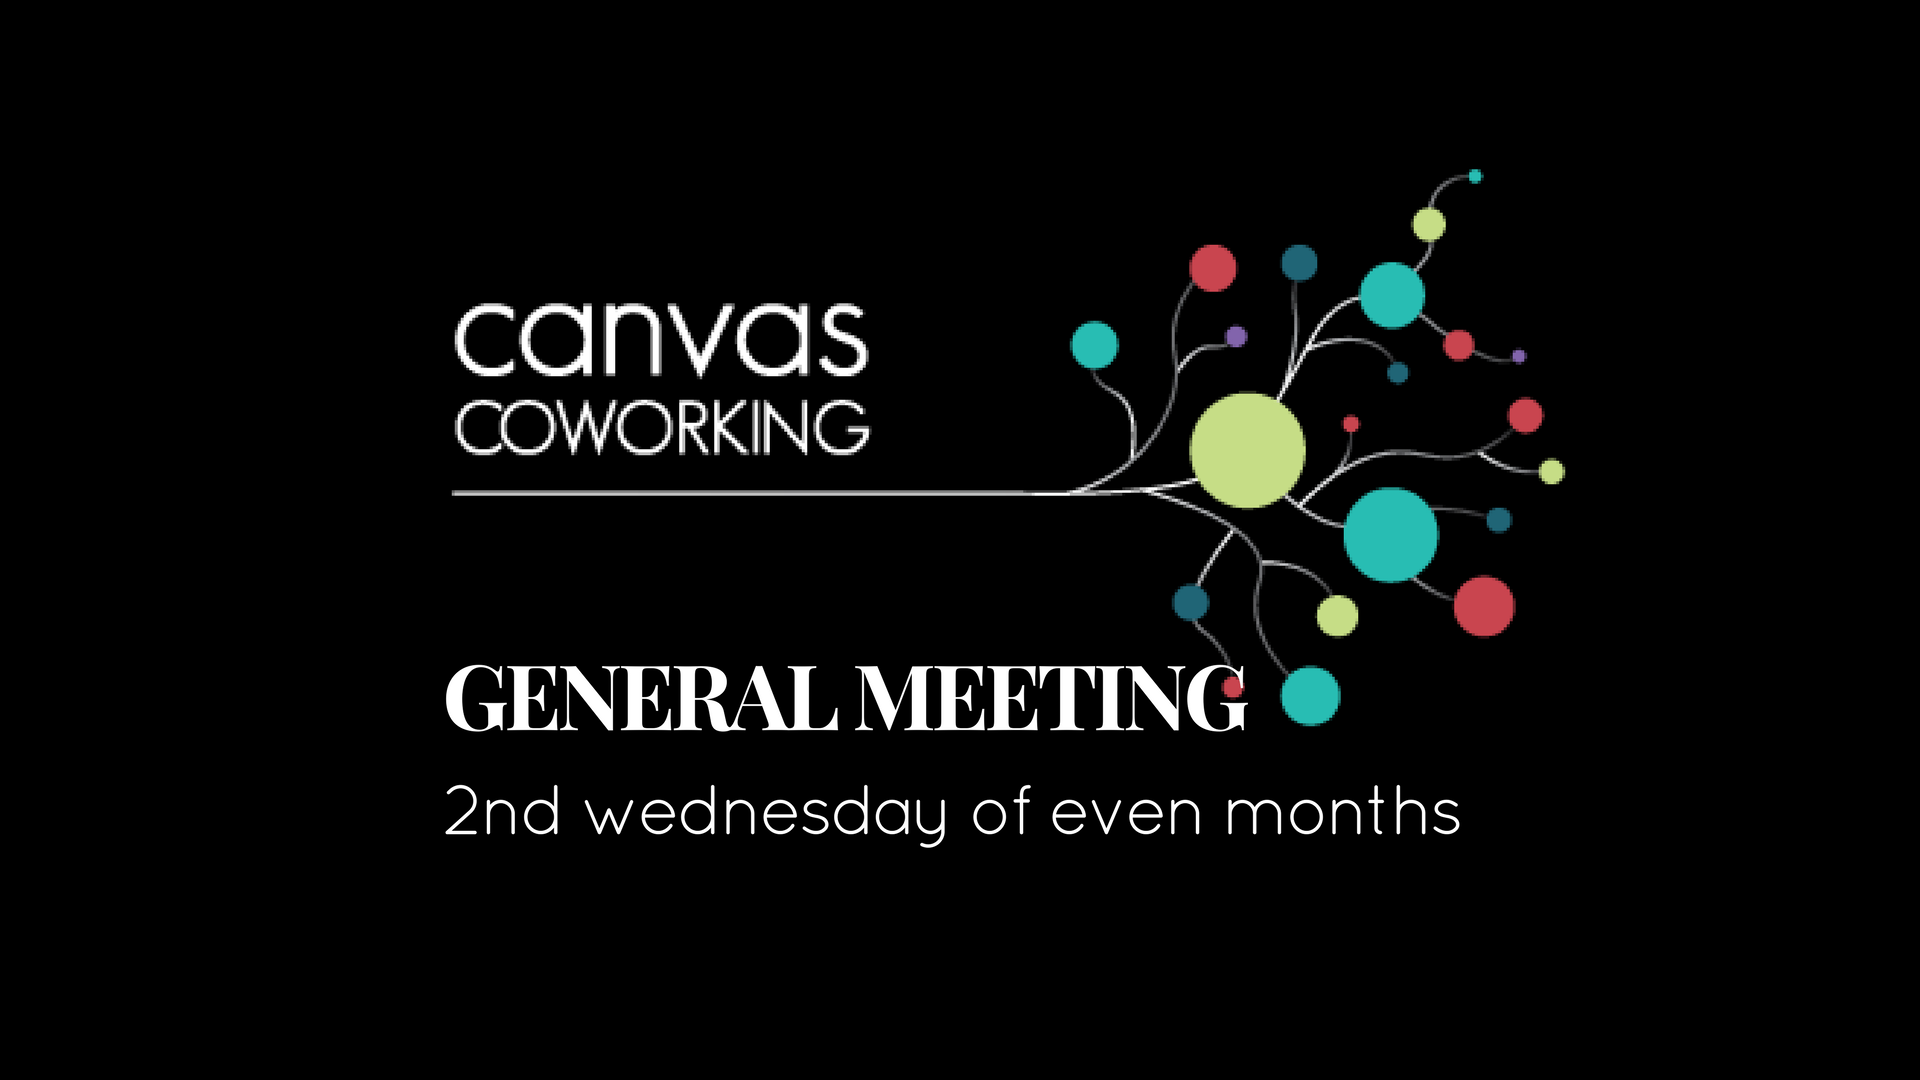 general meeting canvas coworking